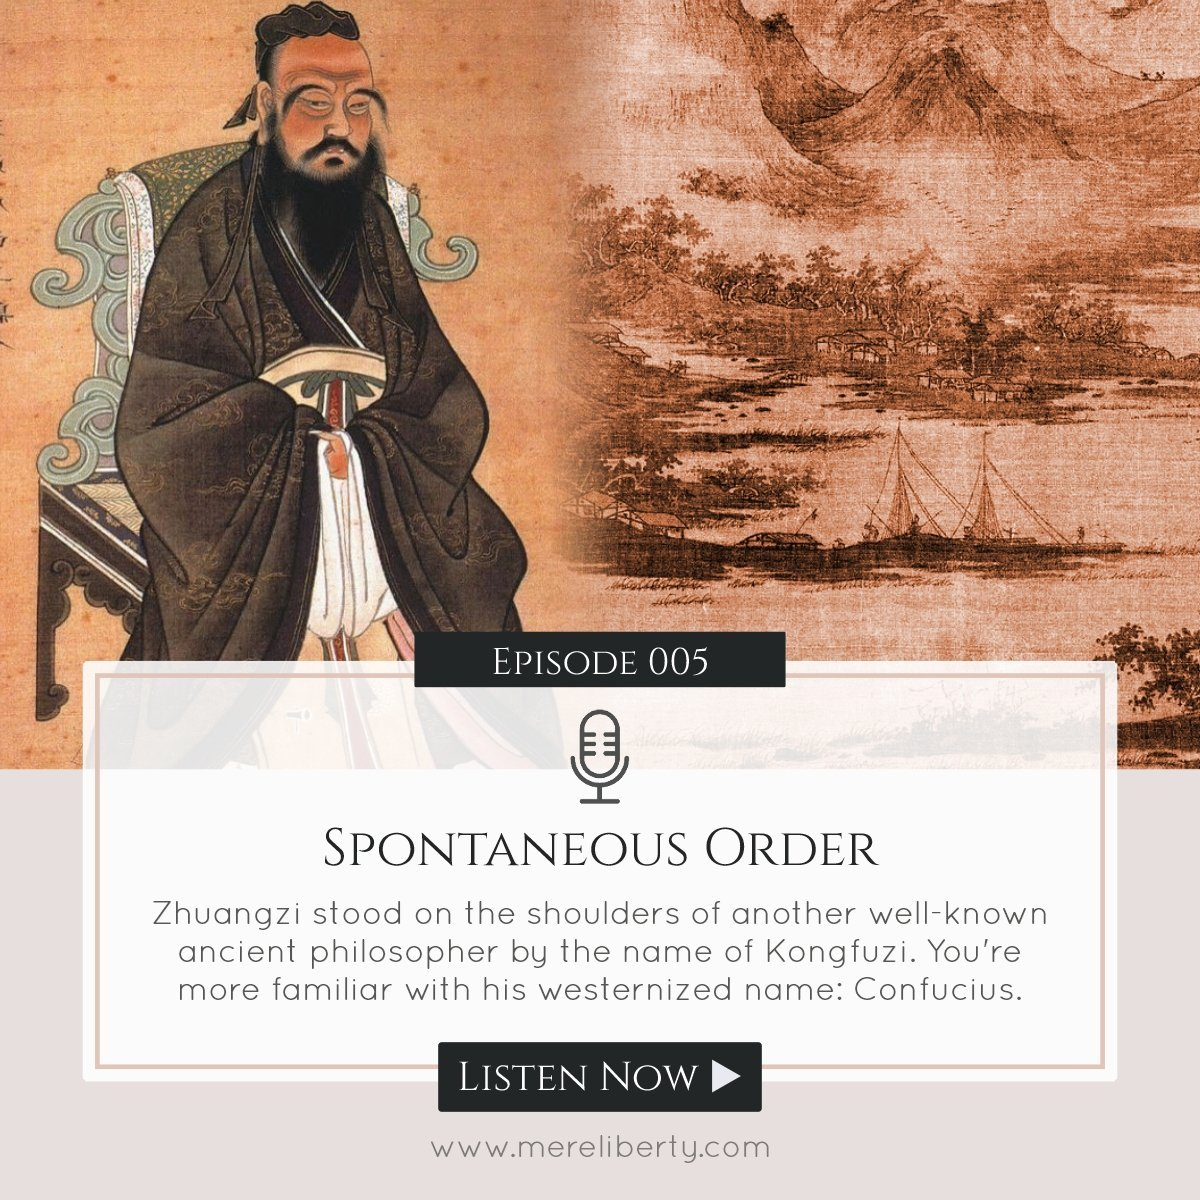 What is #SpontaneousOrder? #Confucians #Libertarianism #MereLiberty #FOL